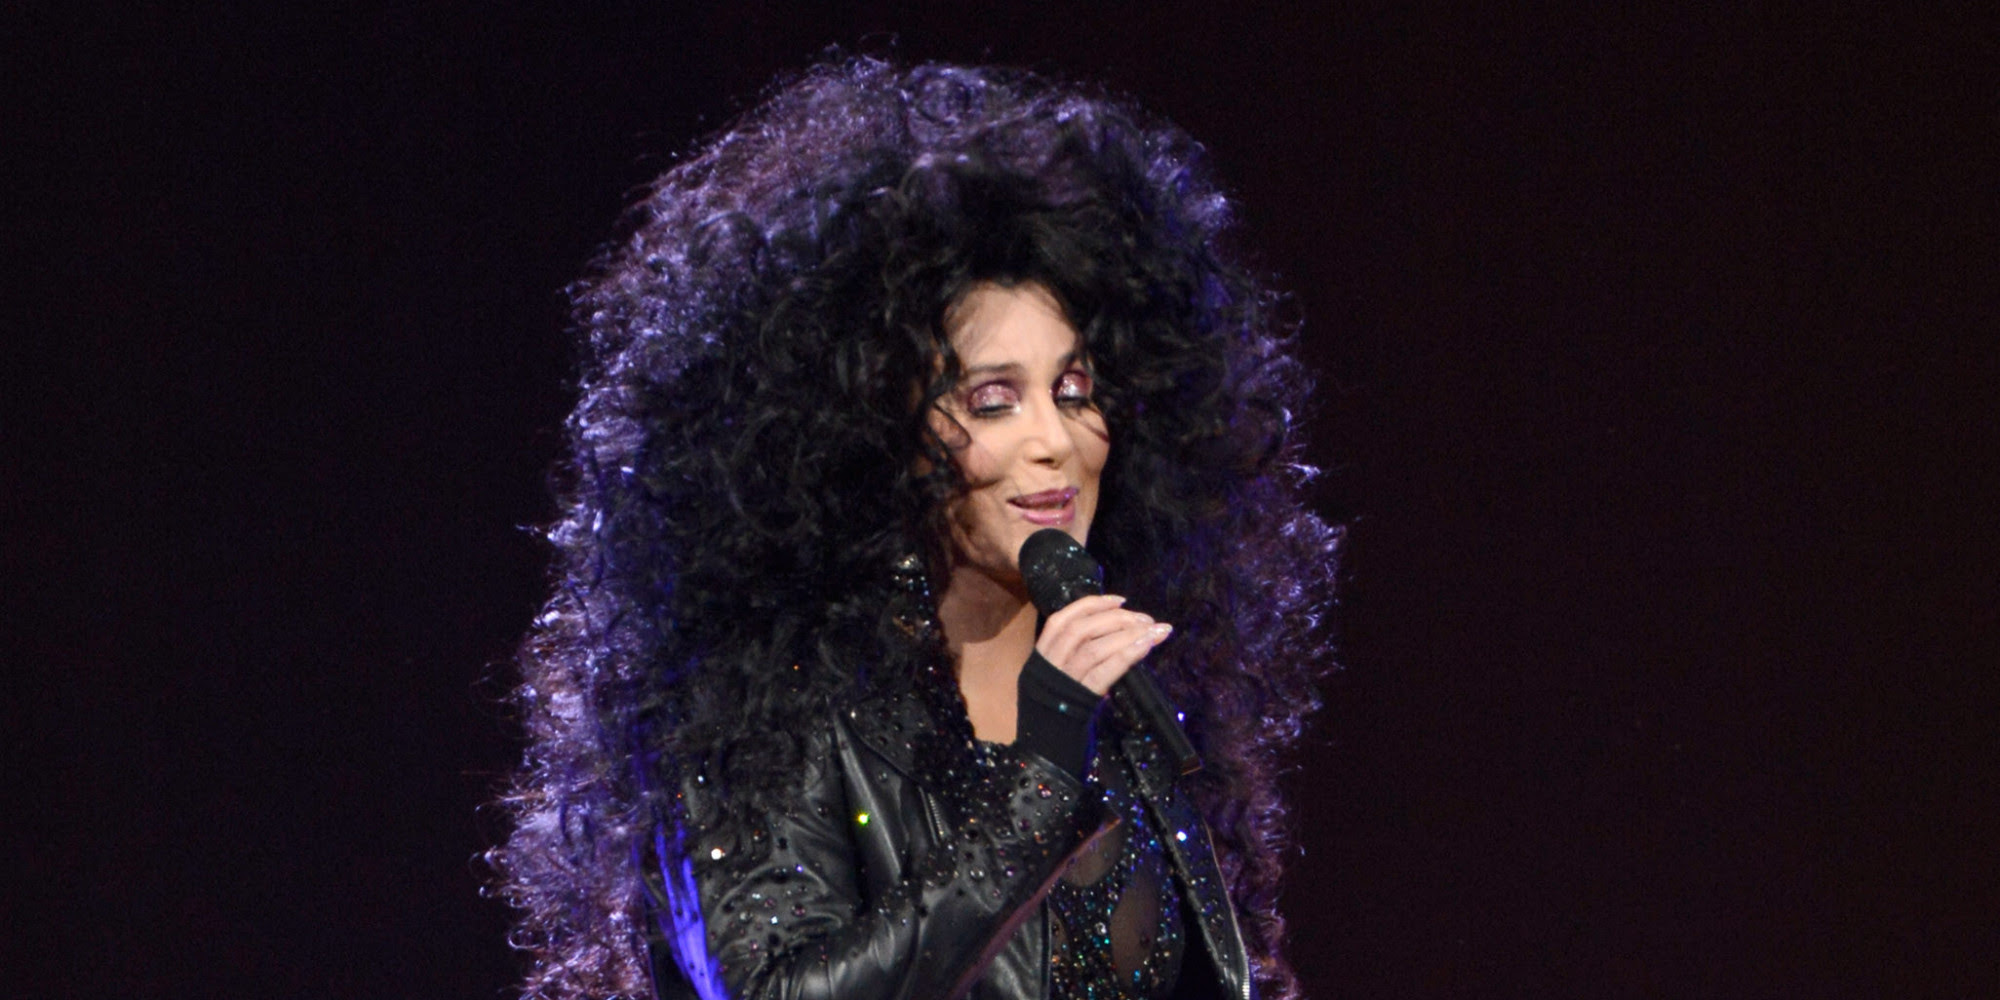 cher wows with outrageous outfits at 'dressed to kill